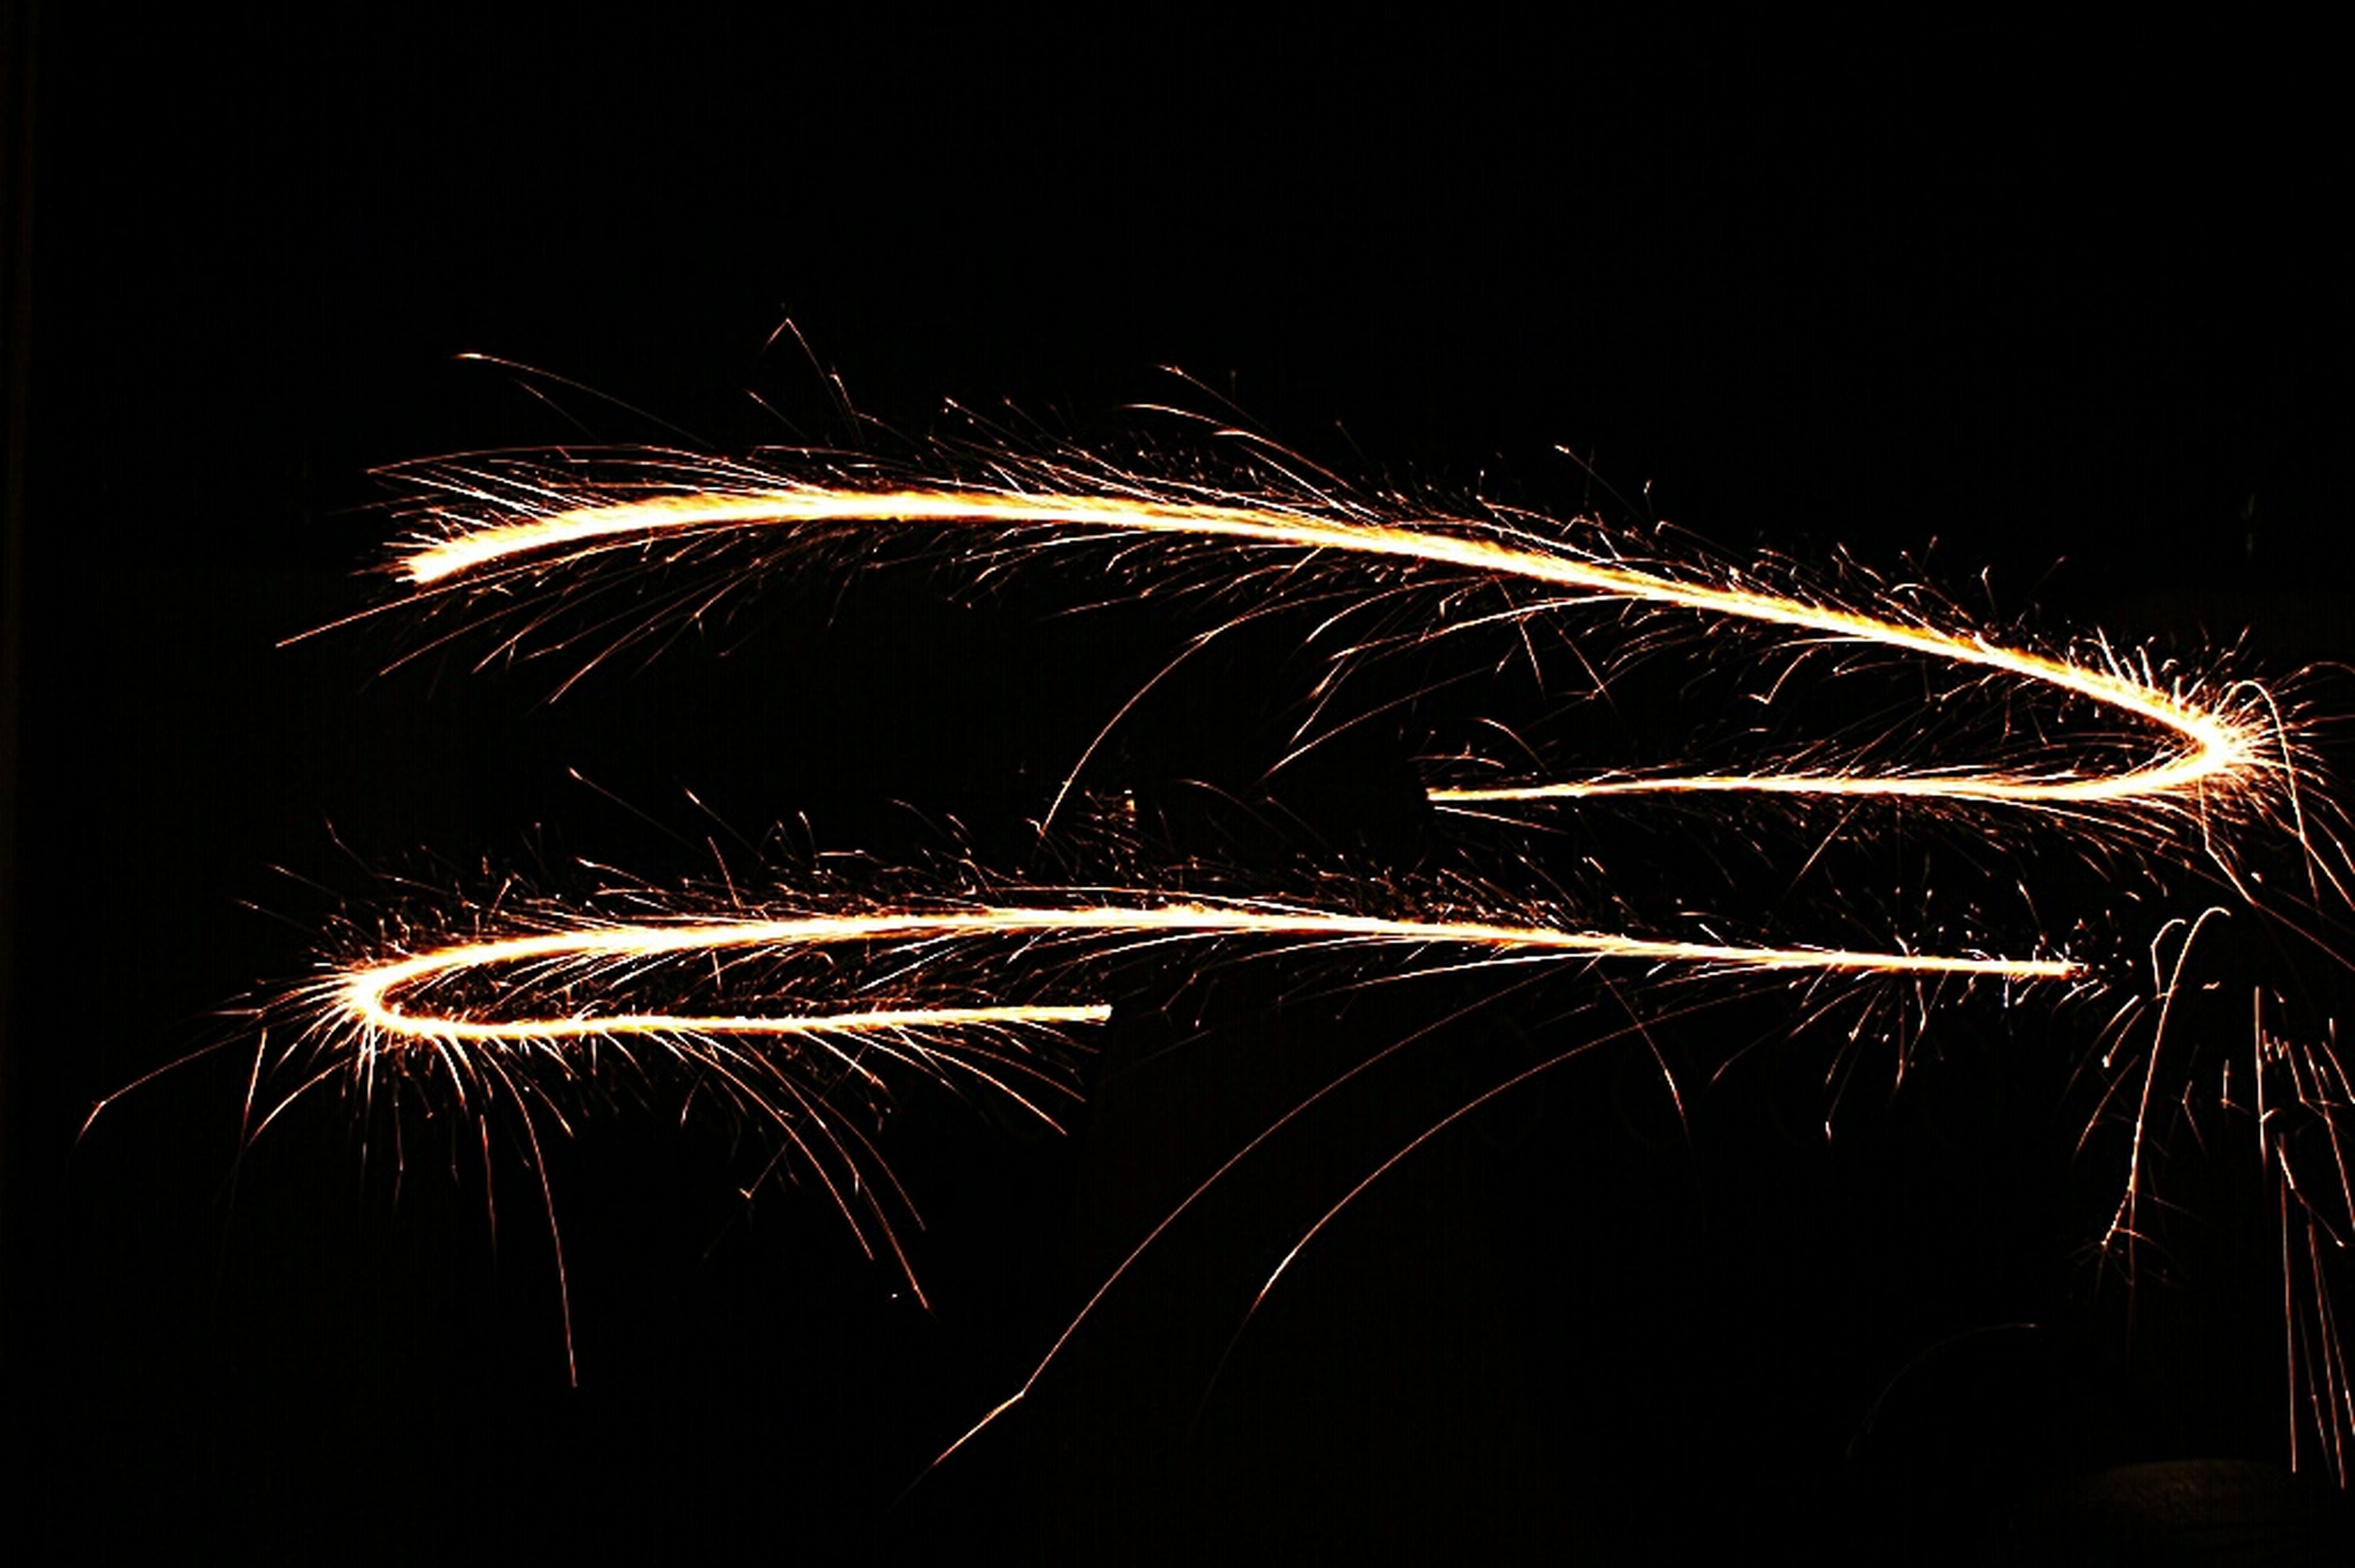 night, long exposure, illuminated, motion, celebration, firework display, light trail, exploding, blurred motion, arts culture and entertainment, firework - man made object, glowing, event, multi colored, sparks, firework, abstract, copy space, speed, light painting